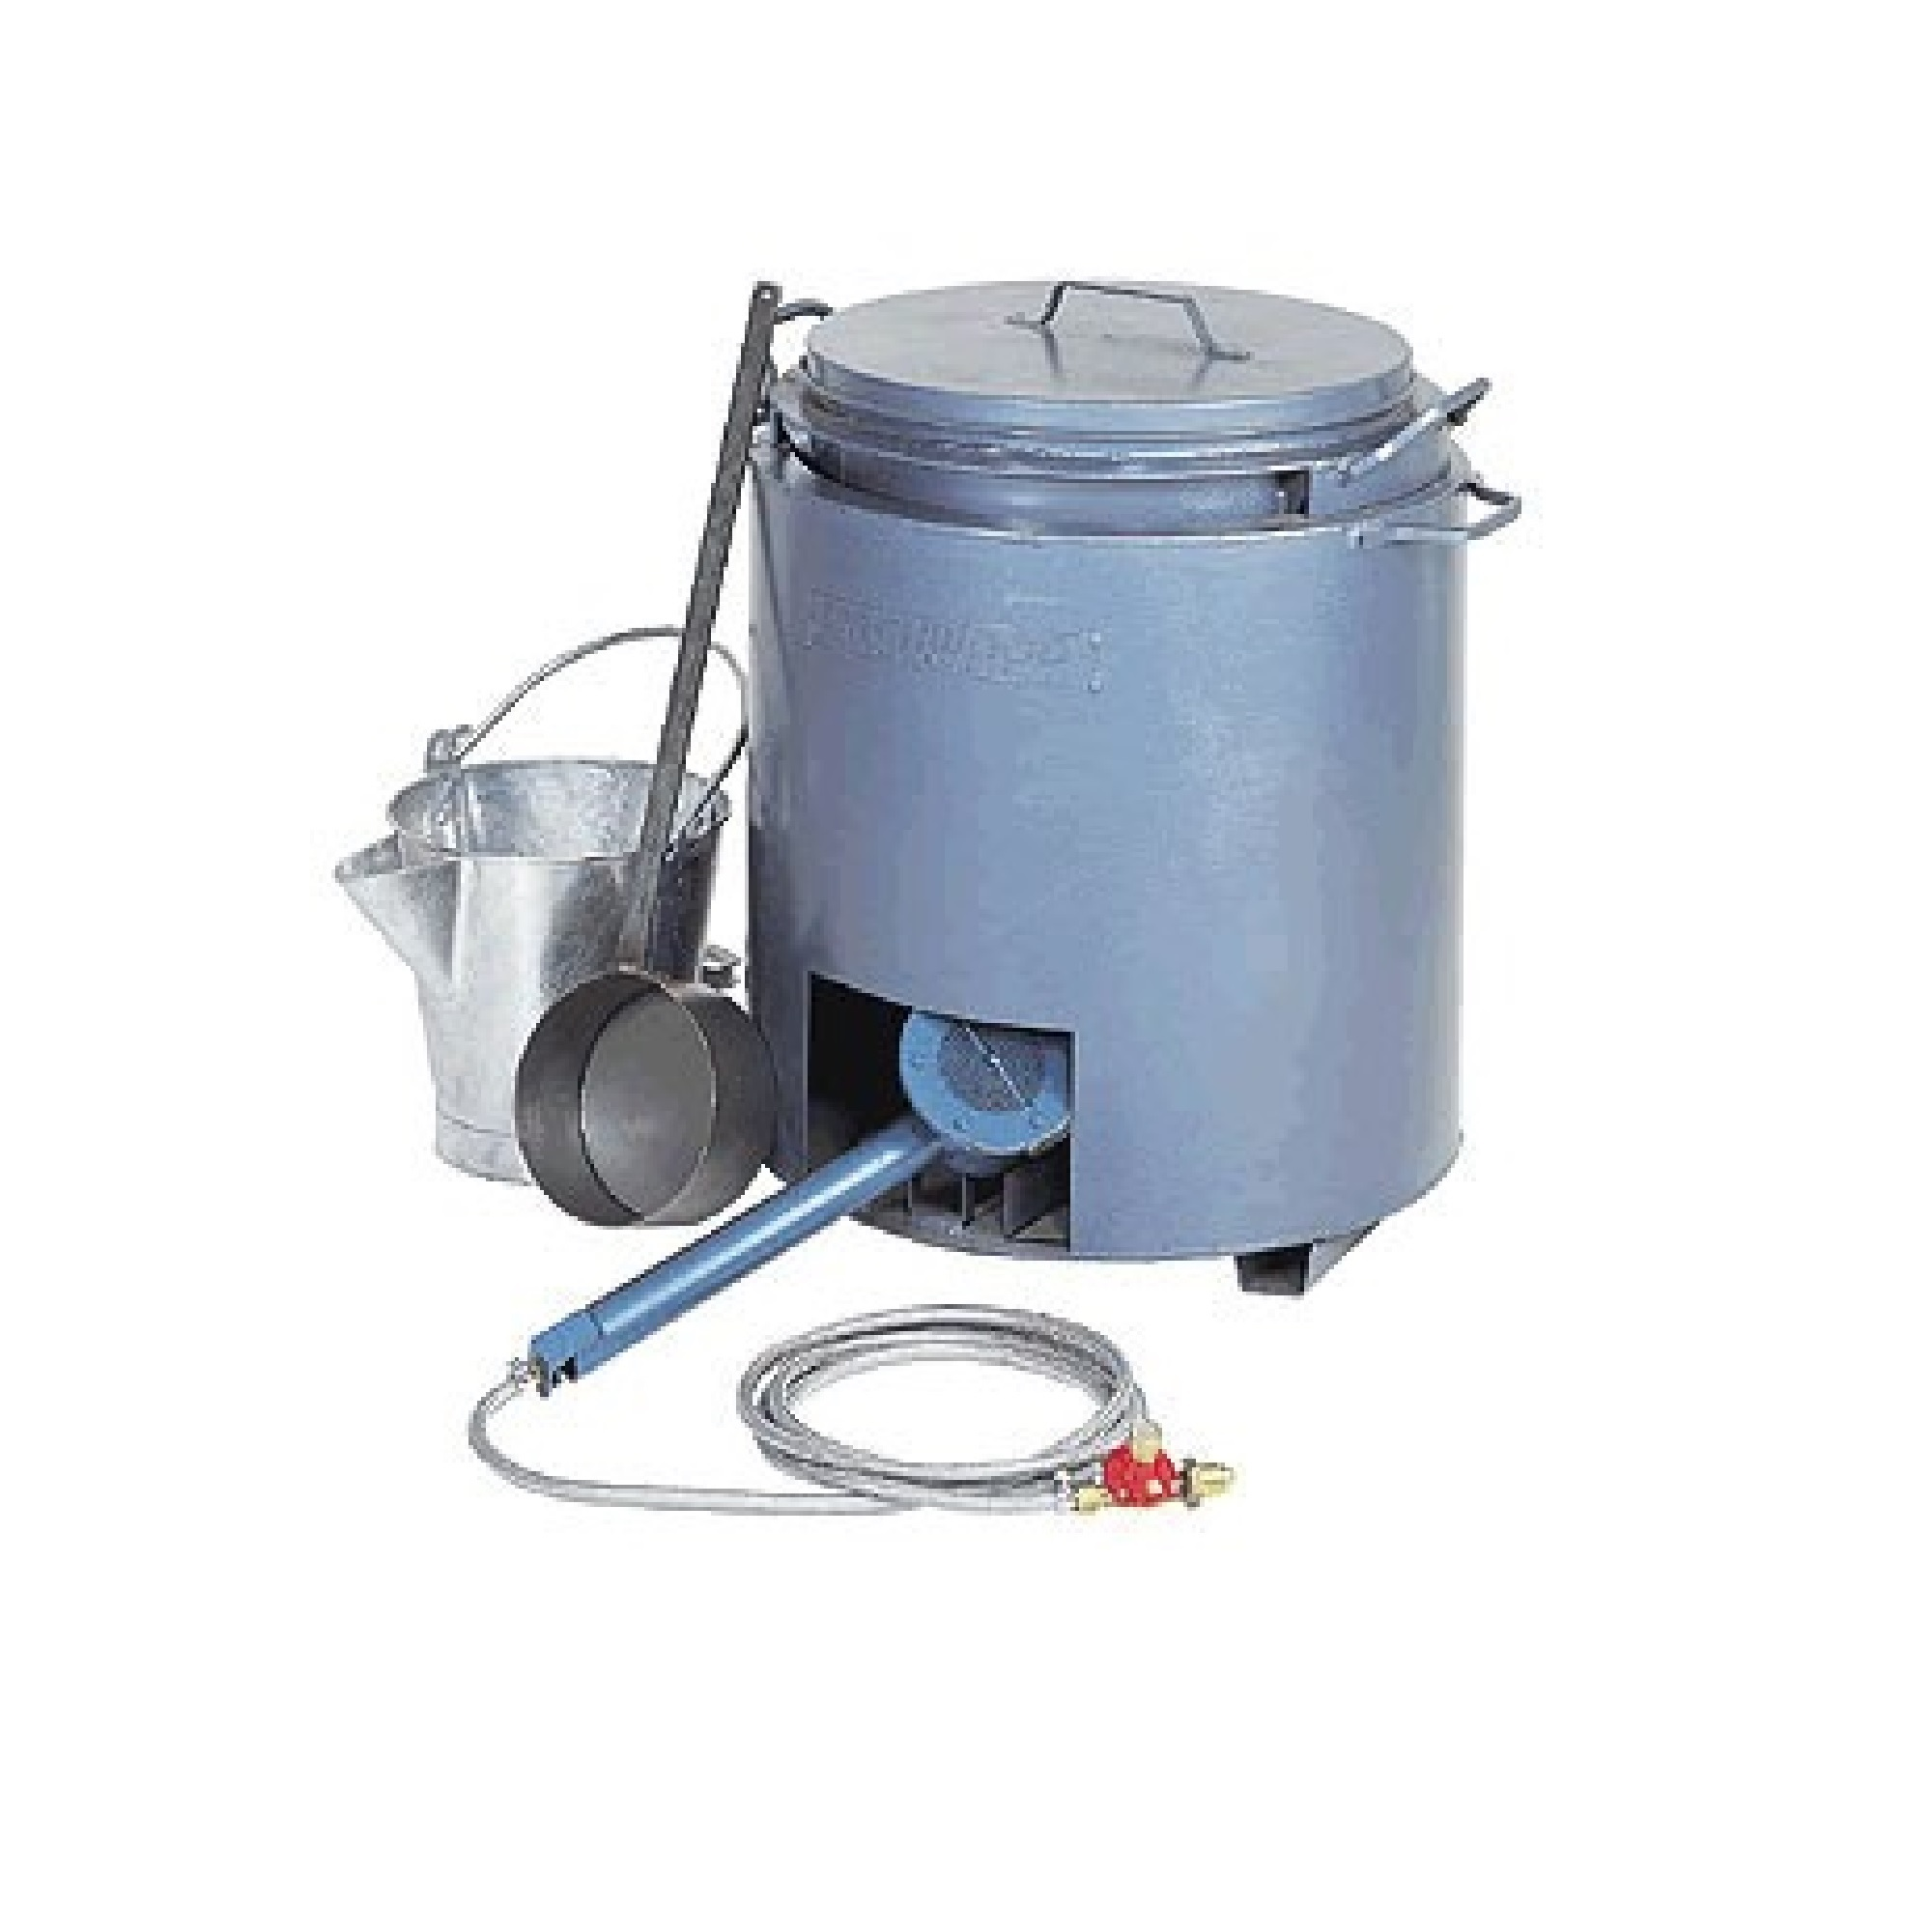 15 gallon tar boiler kit including tap, impact burner, regulator, armoured hose, long handle ladle and steel 'V' lip bucket